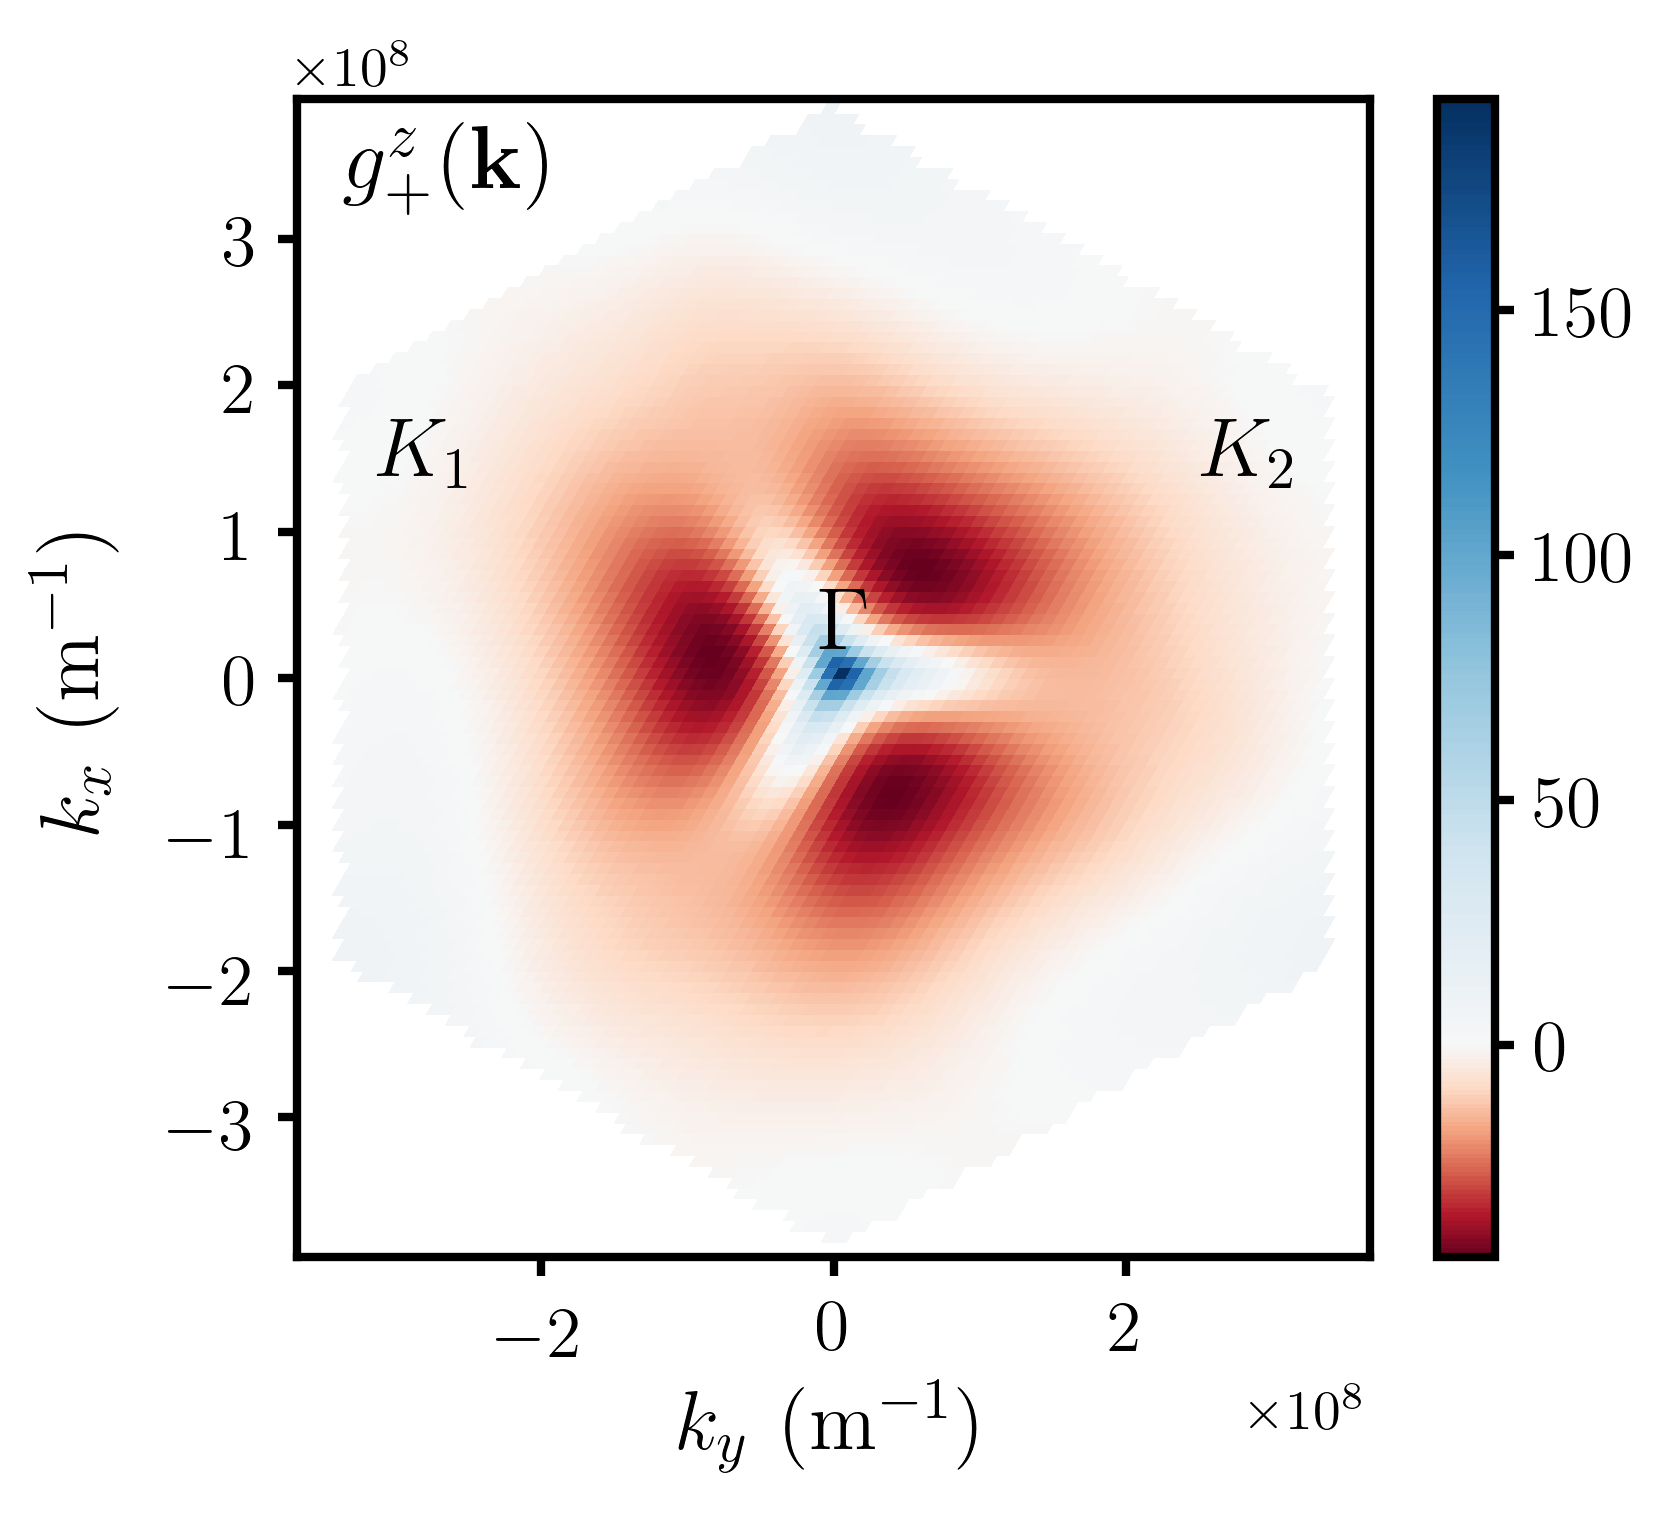 Color plots for